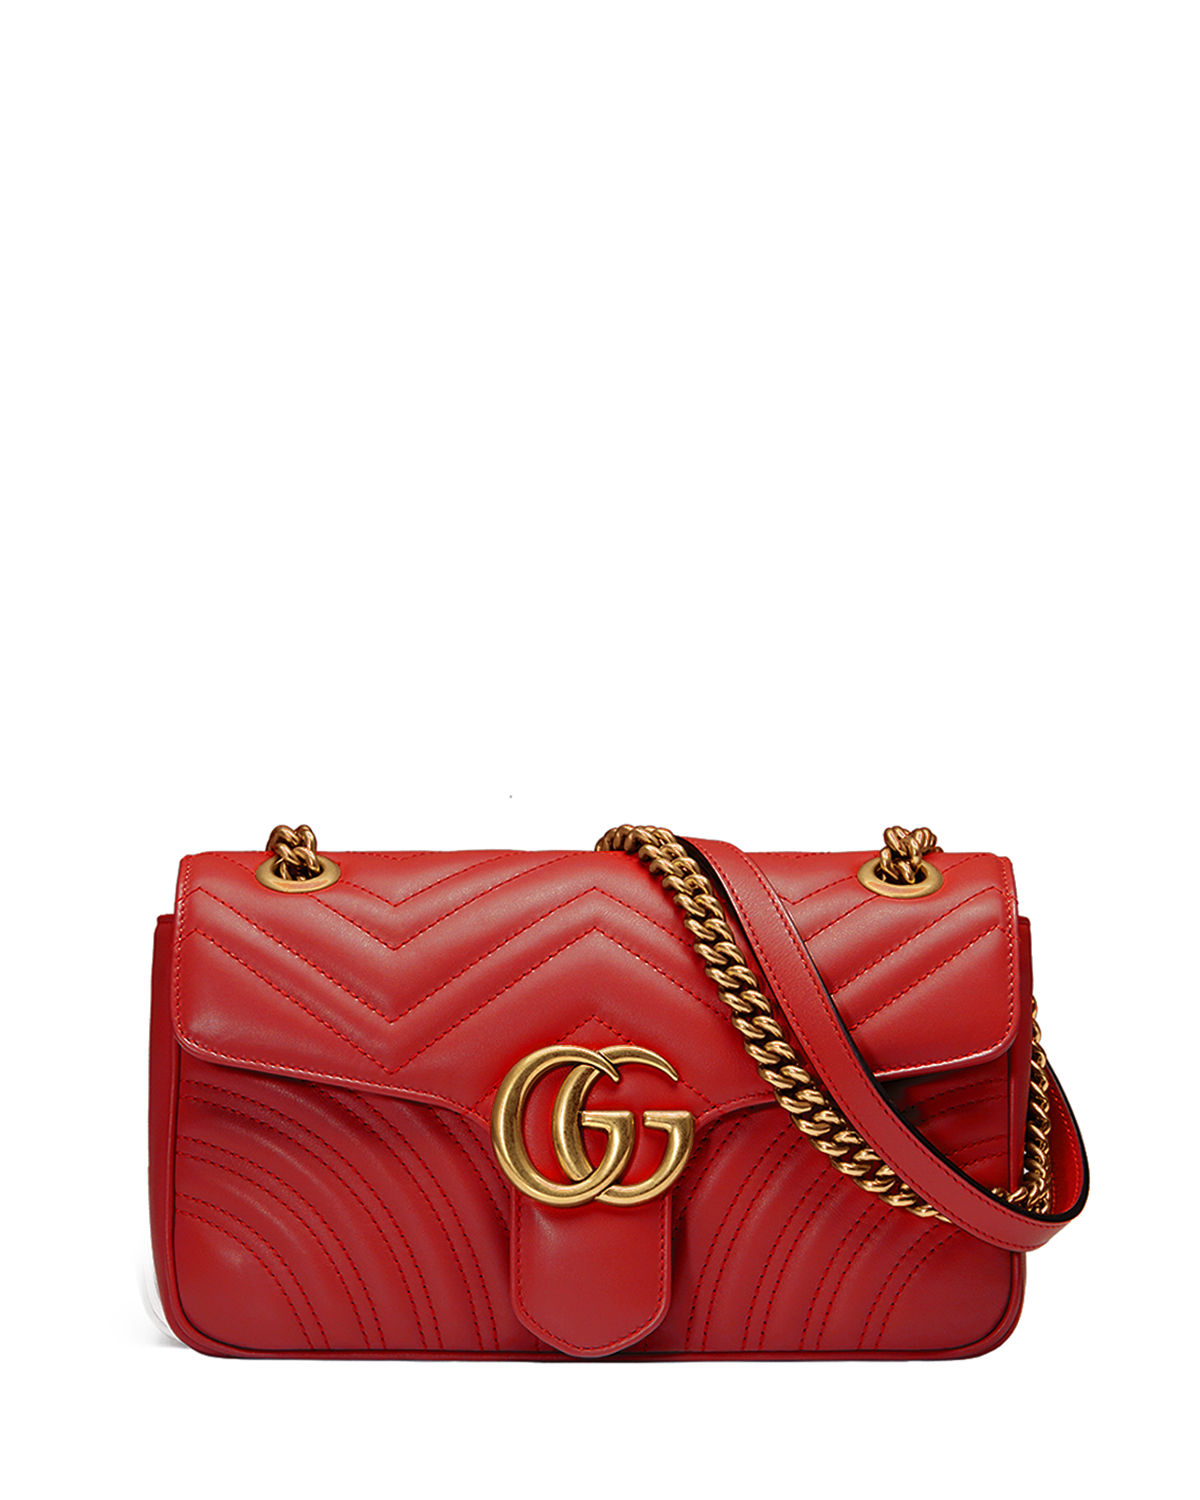 916838c55f6 Gucci GG Marmont Small Matelasse Shoulder Bag